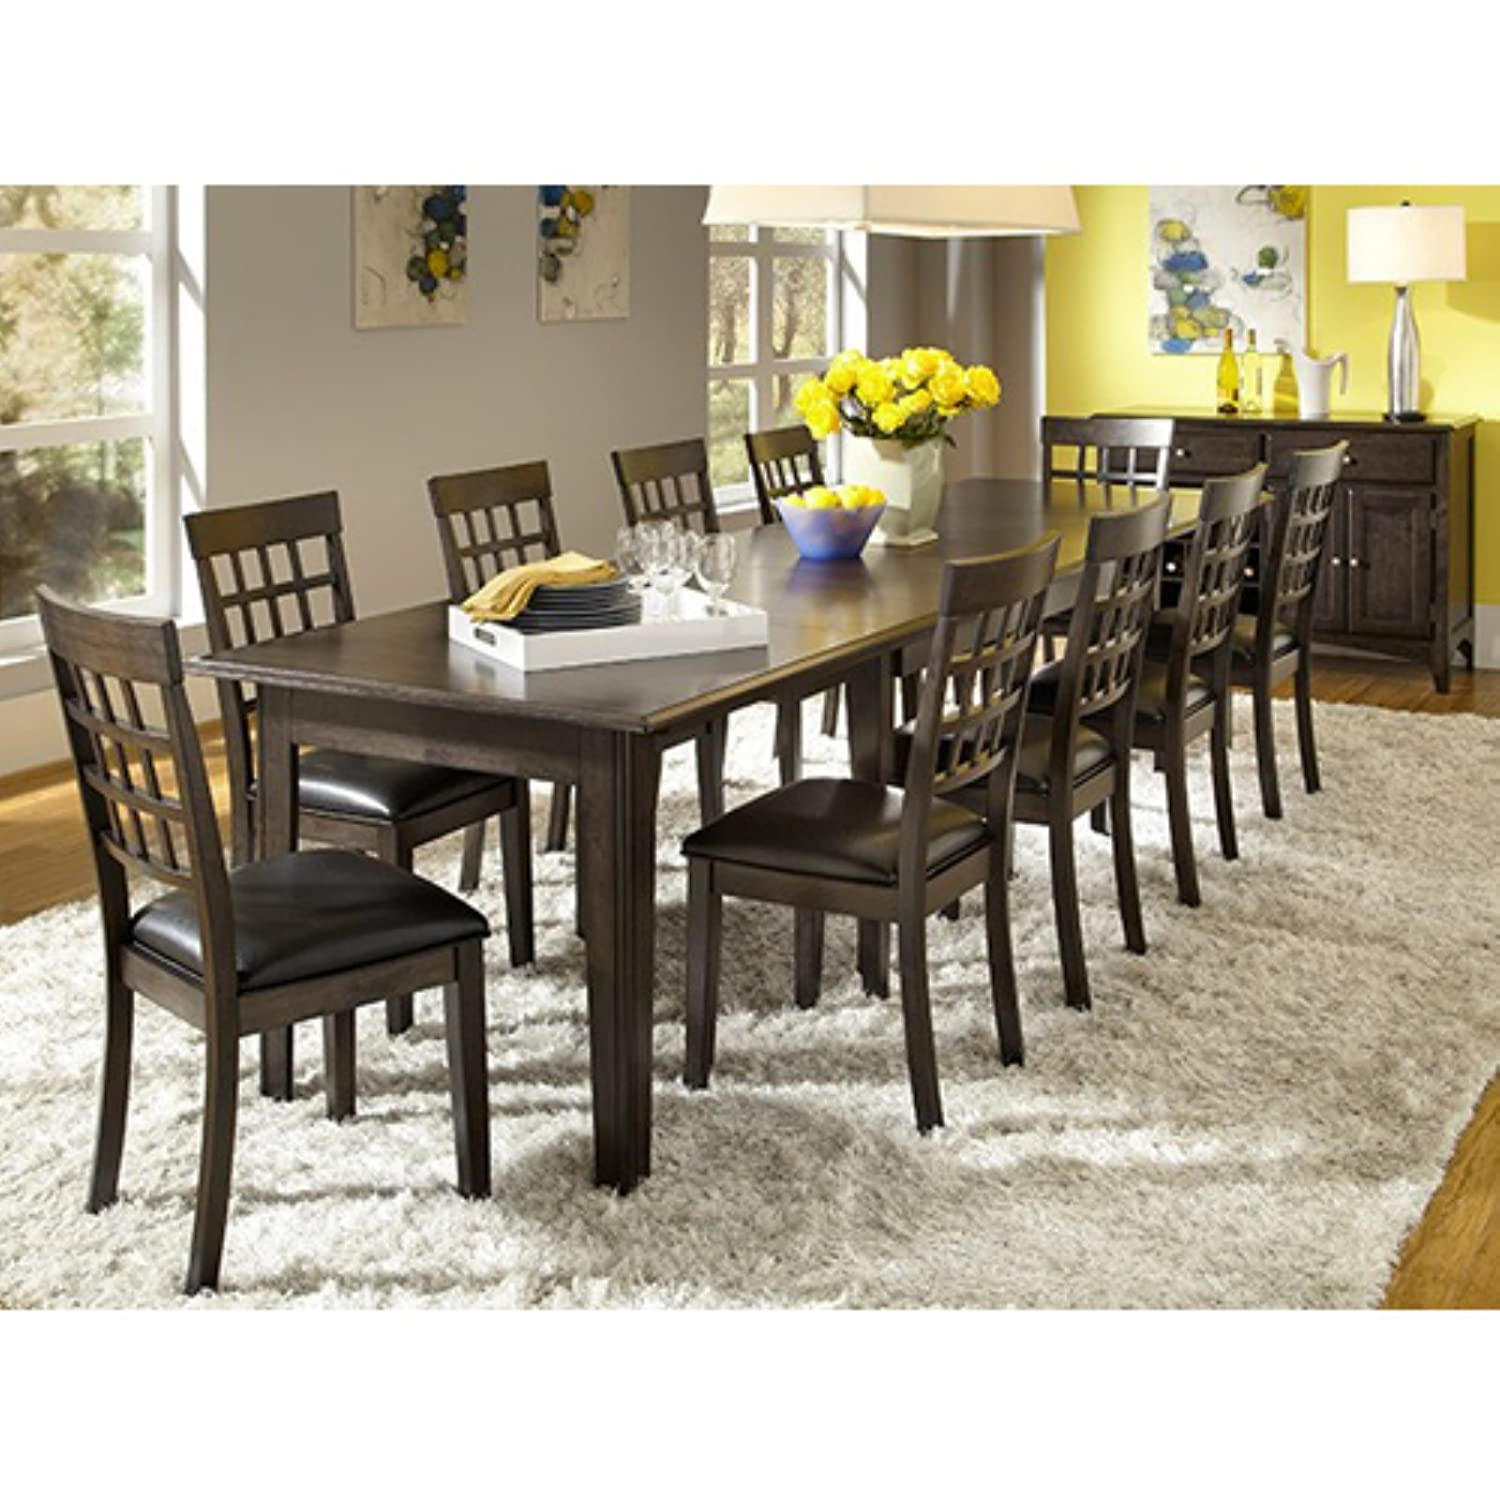 Amazon a america bristol point 132 rectangular dining table amazon a america bristol point 132 rectangular dining table with 3 24 leaves warm grey kitchen dining workwithnaturefo